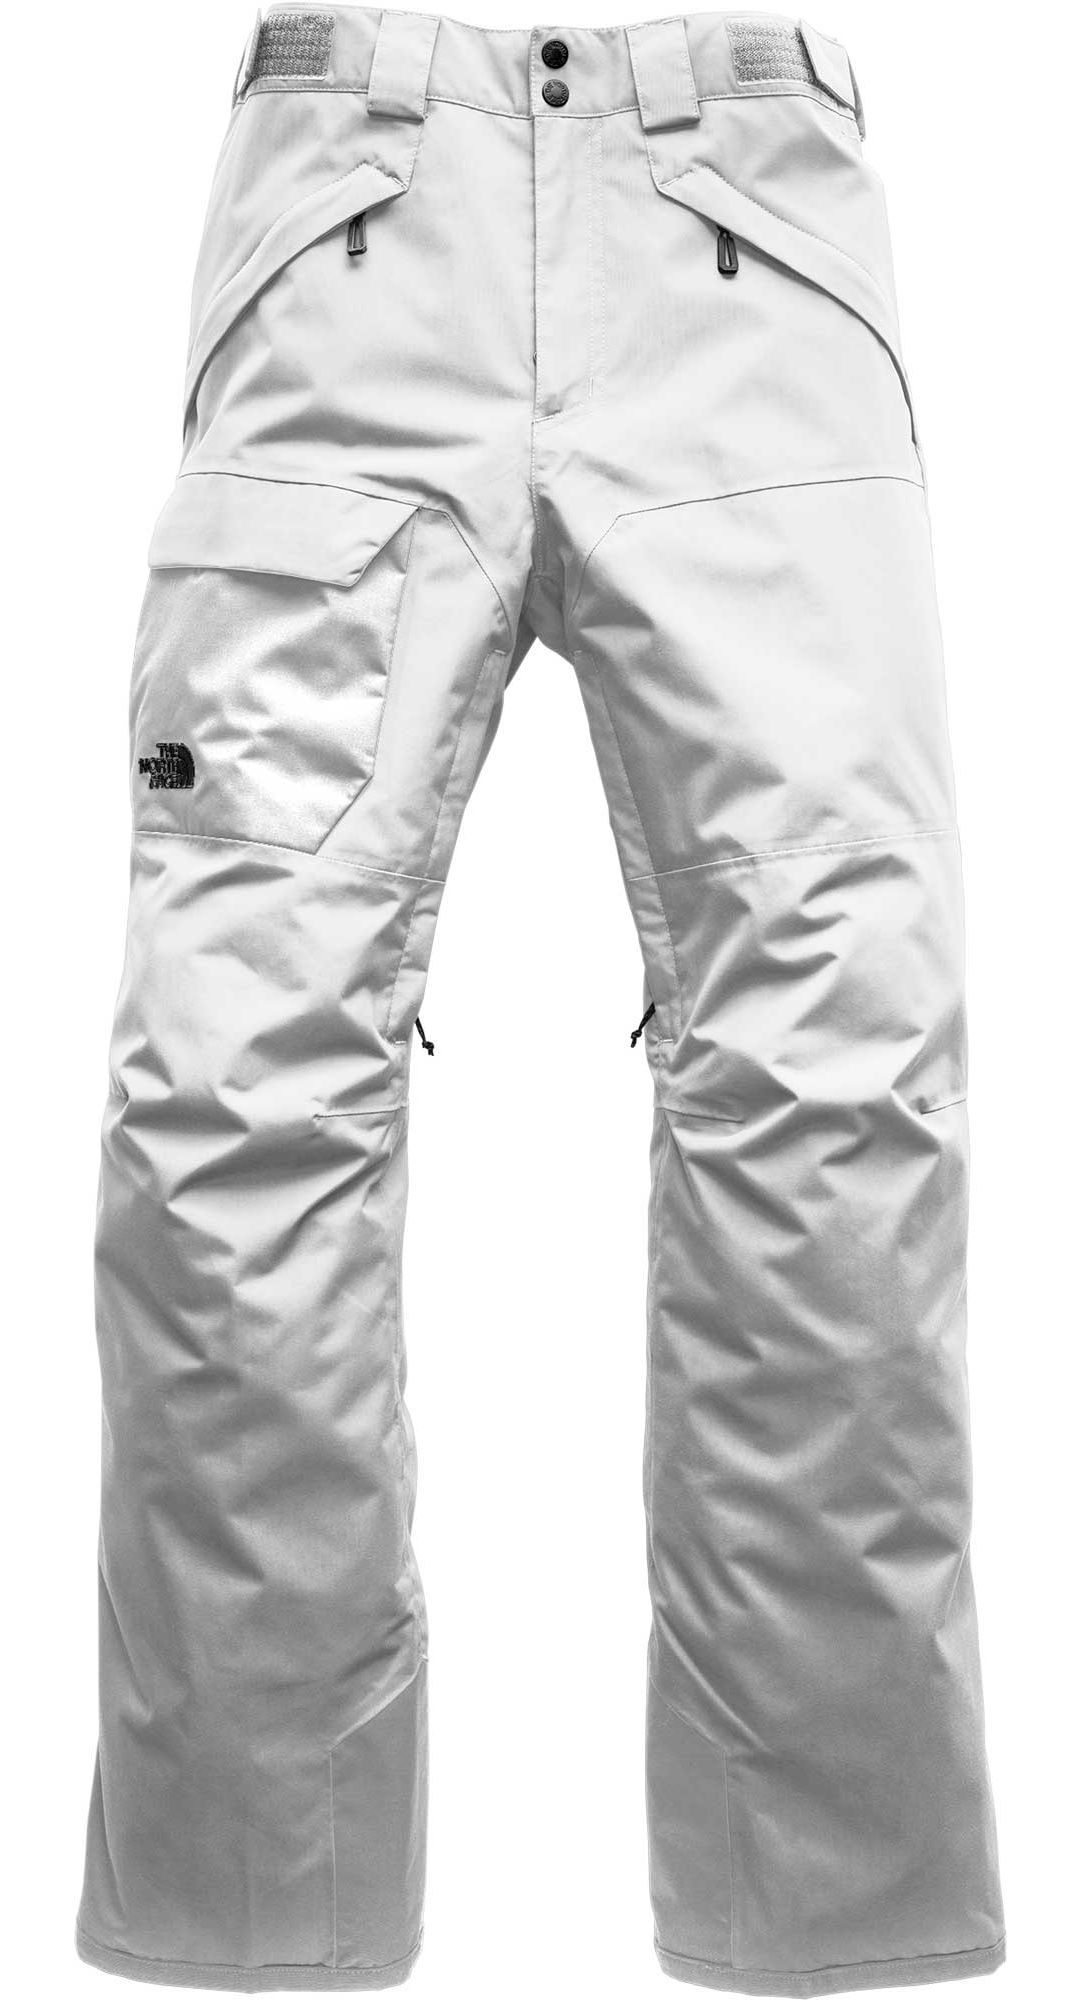 dce96c382 The North Face Men's Freedom Pants